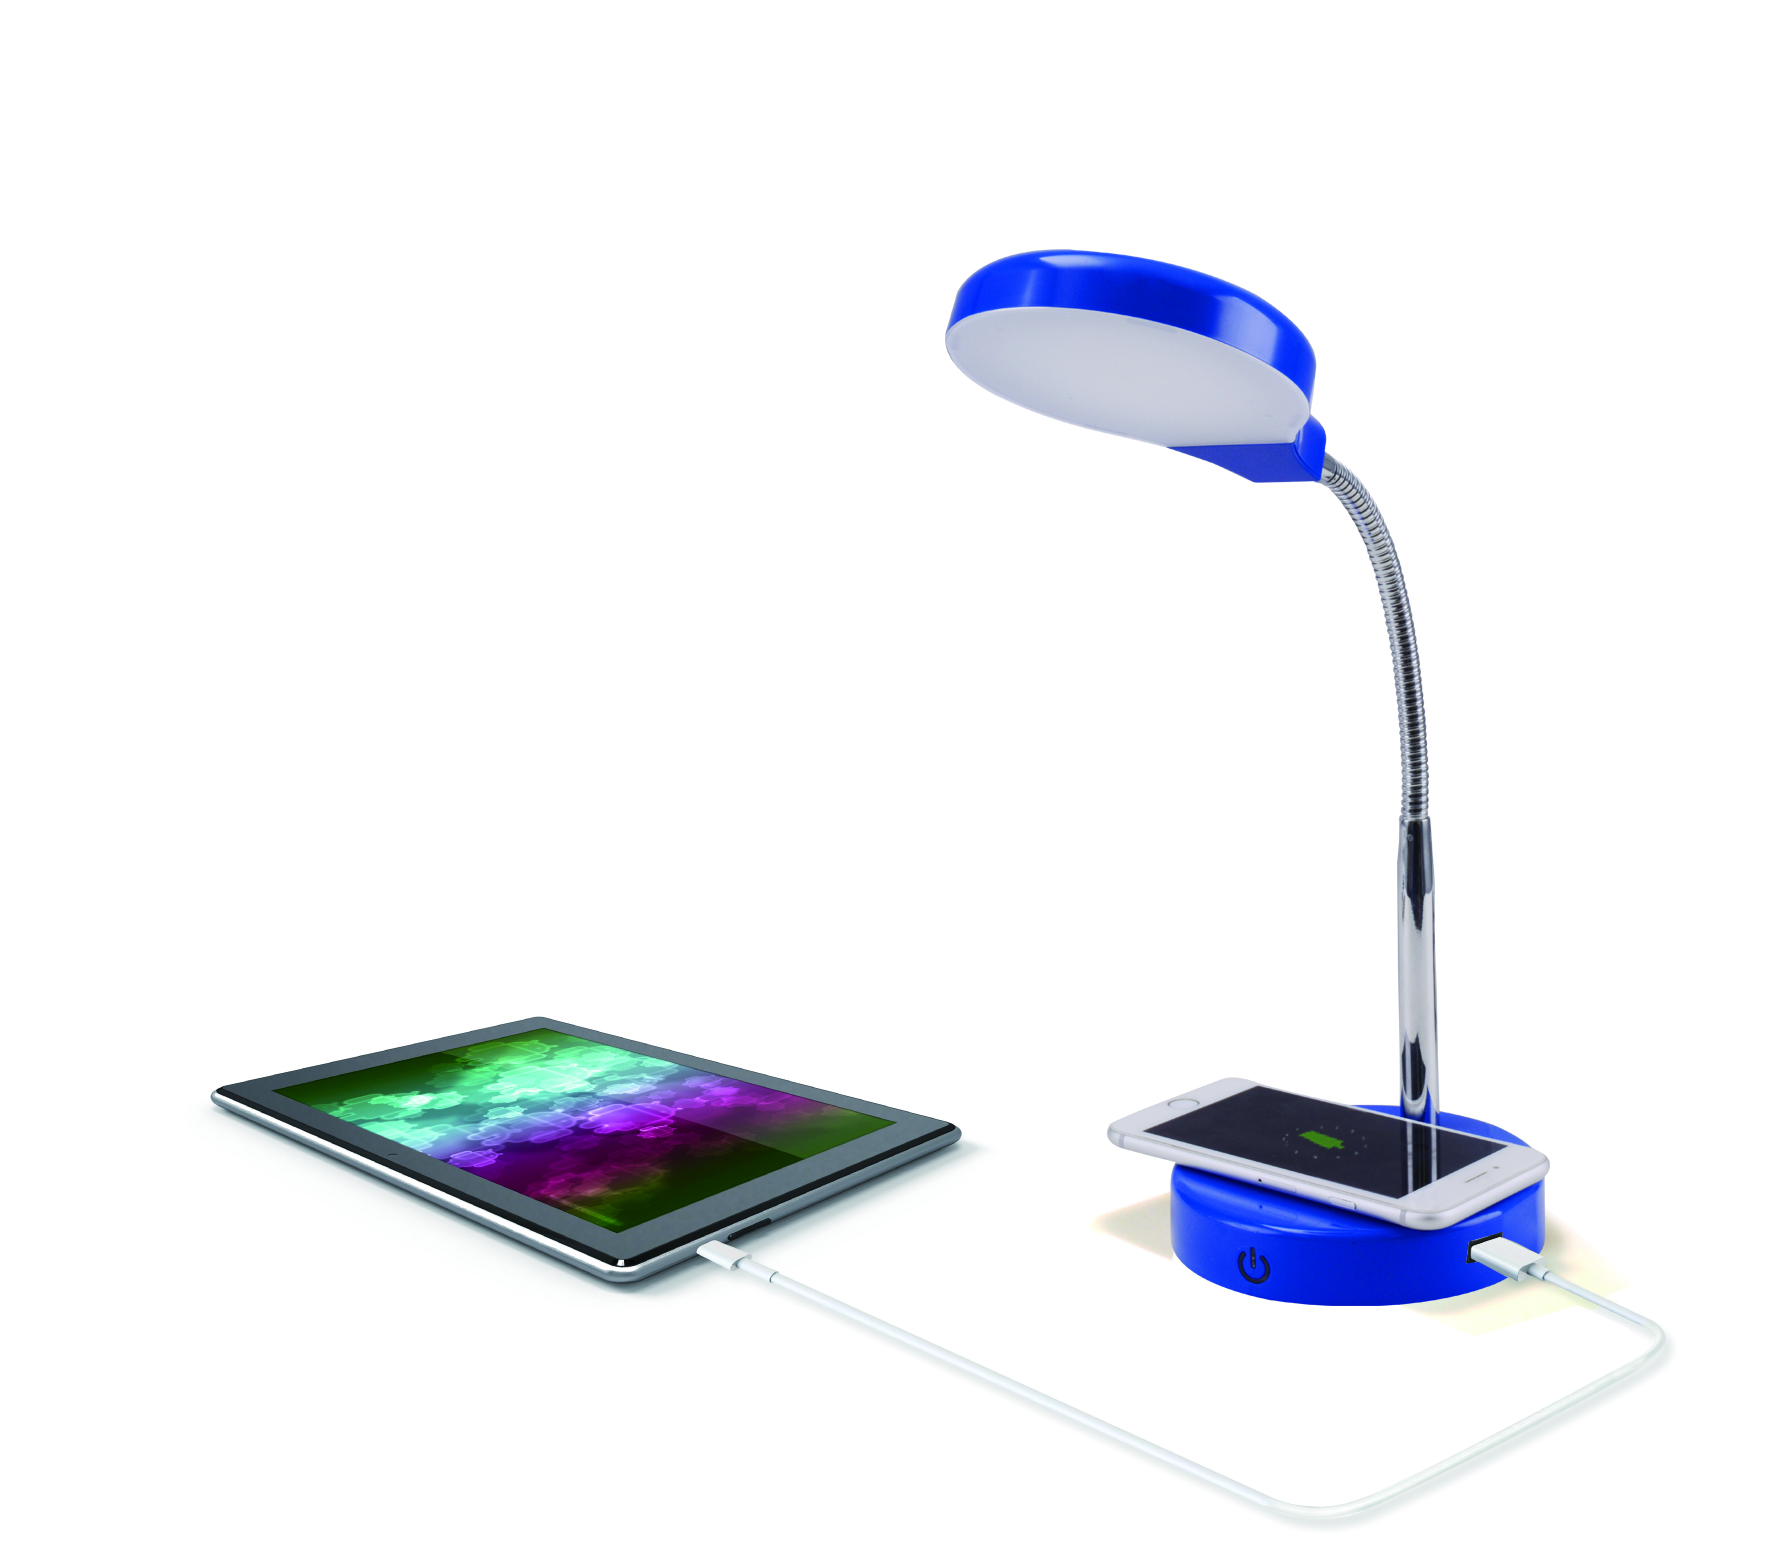 Mainstays LED Wireless Charging Lamp with USB Port Charges Phone Wirelessly by Zhejiang yankon group co.,ltd